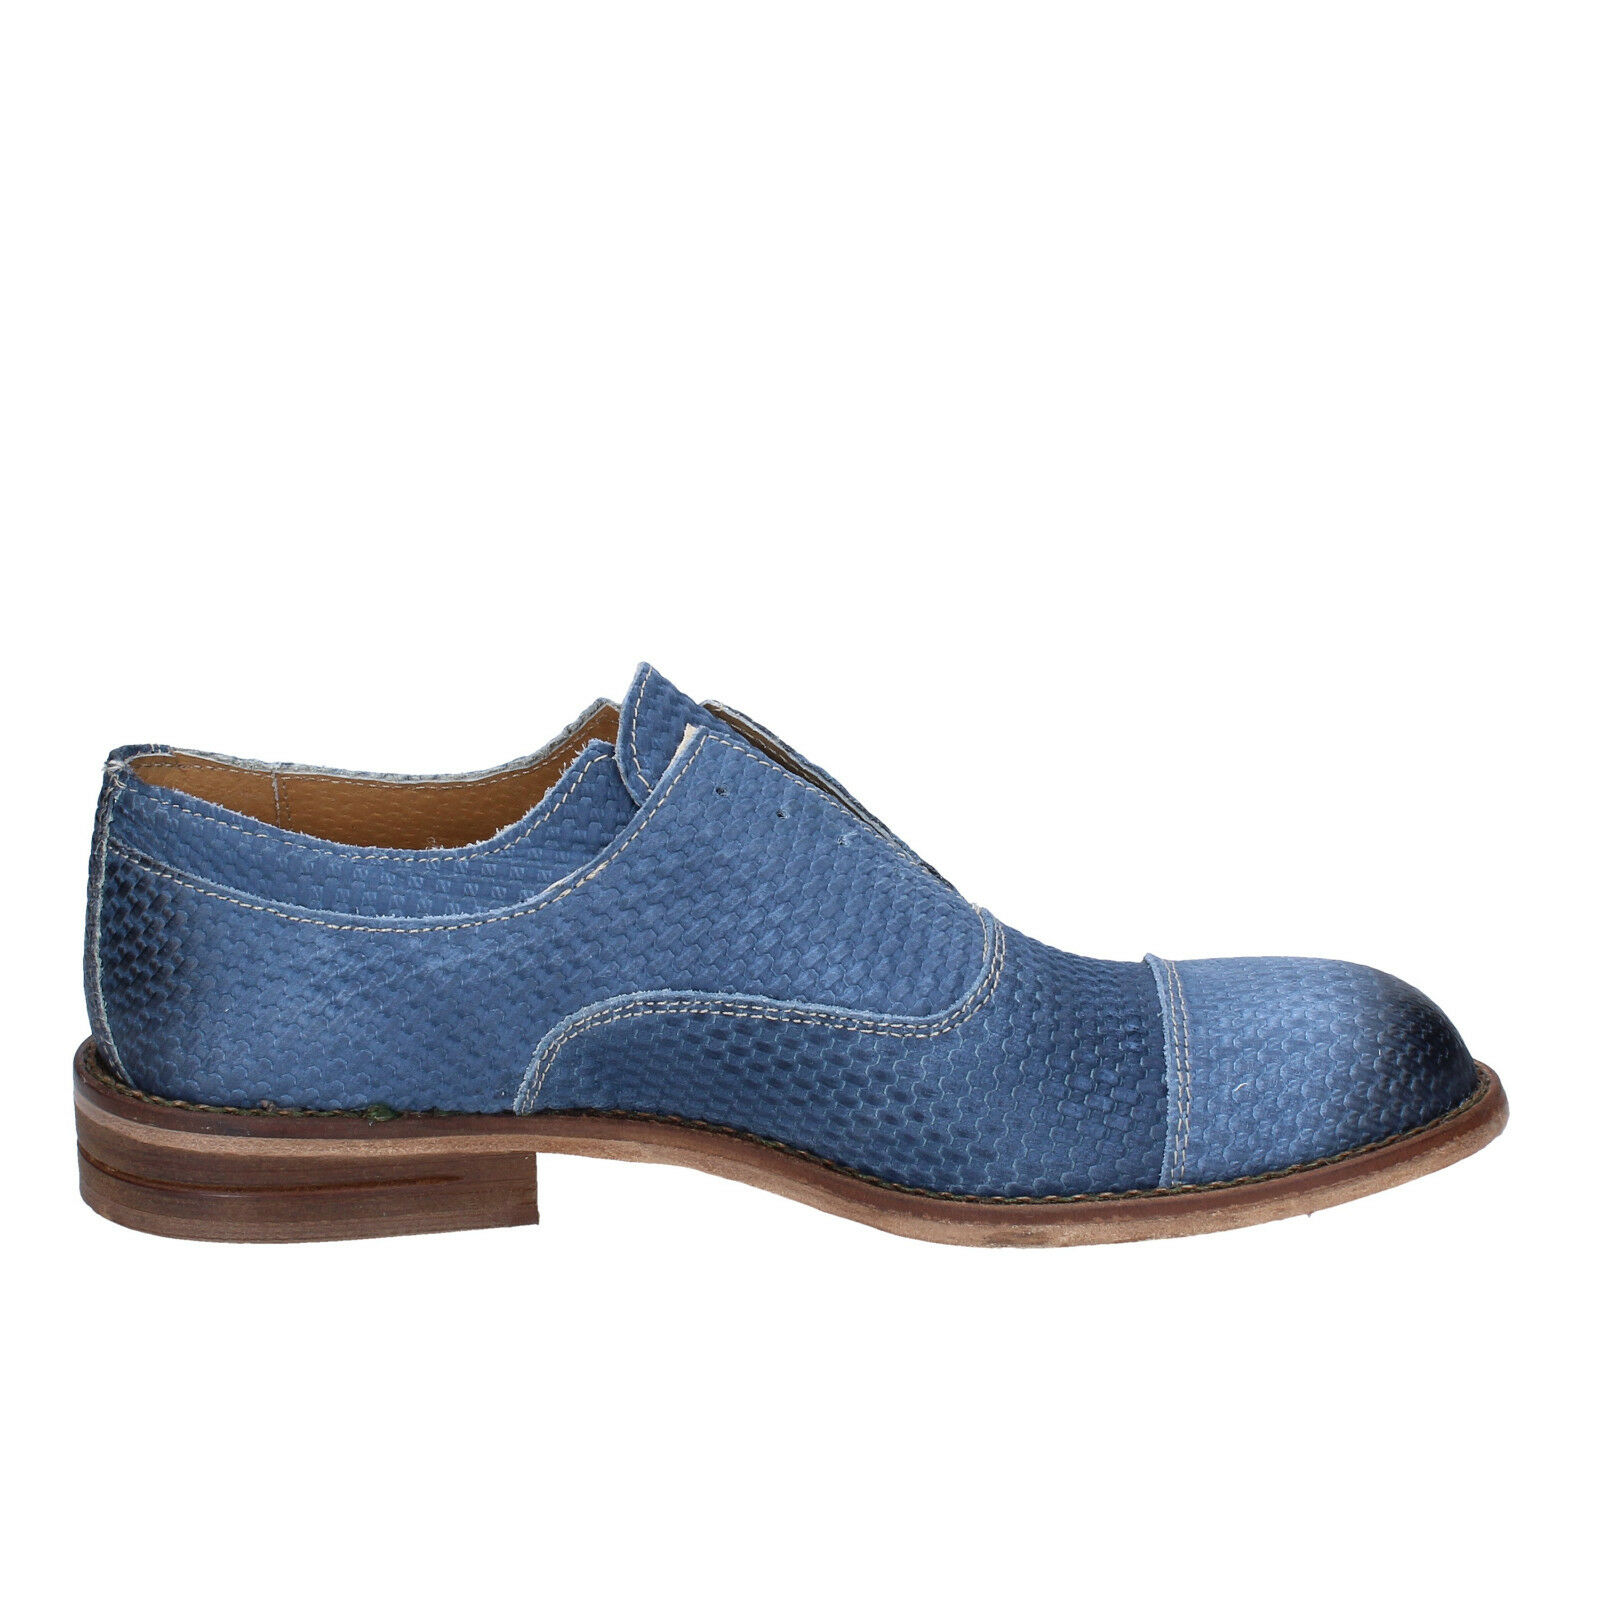 uomo +2 MADE IN ITALY 43 UE ELEGANTE BLU NABUK bt700-43 29d974